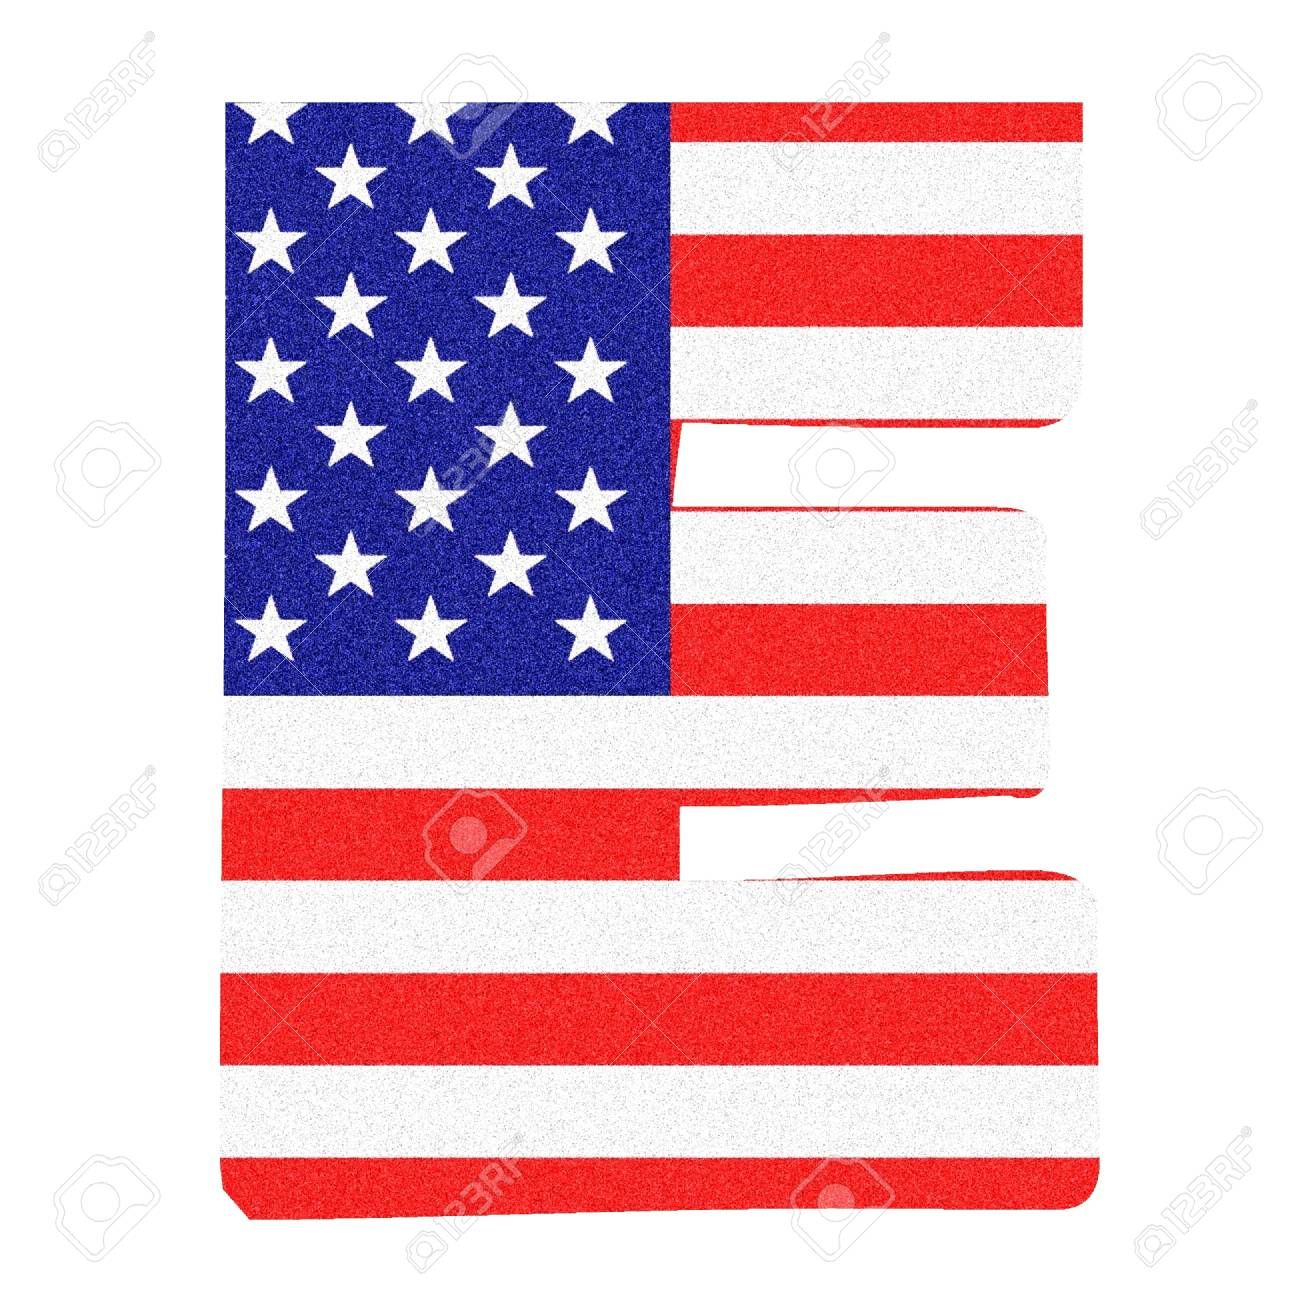 Letter Of The Alphabet On The United States Of America Flag Style With Black Marbled Glitter